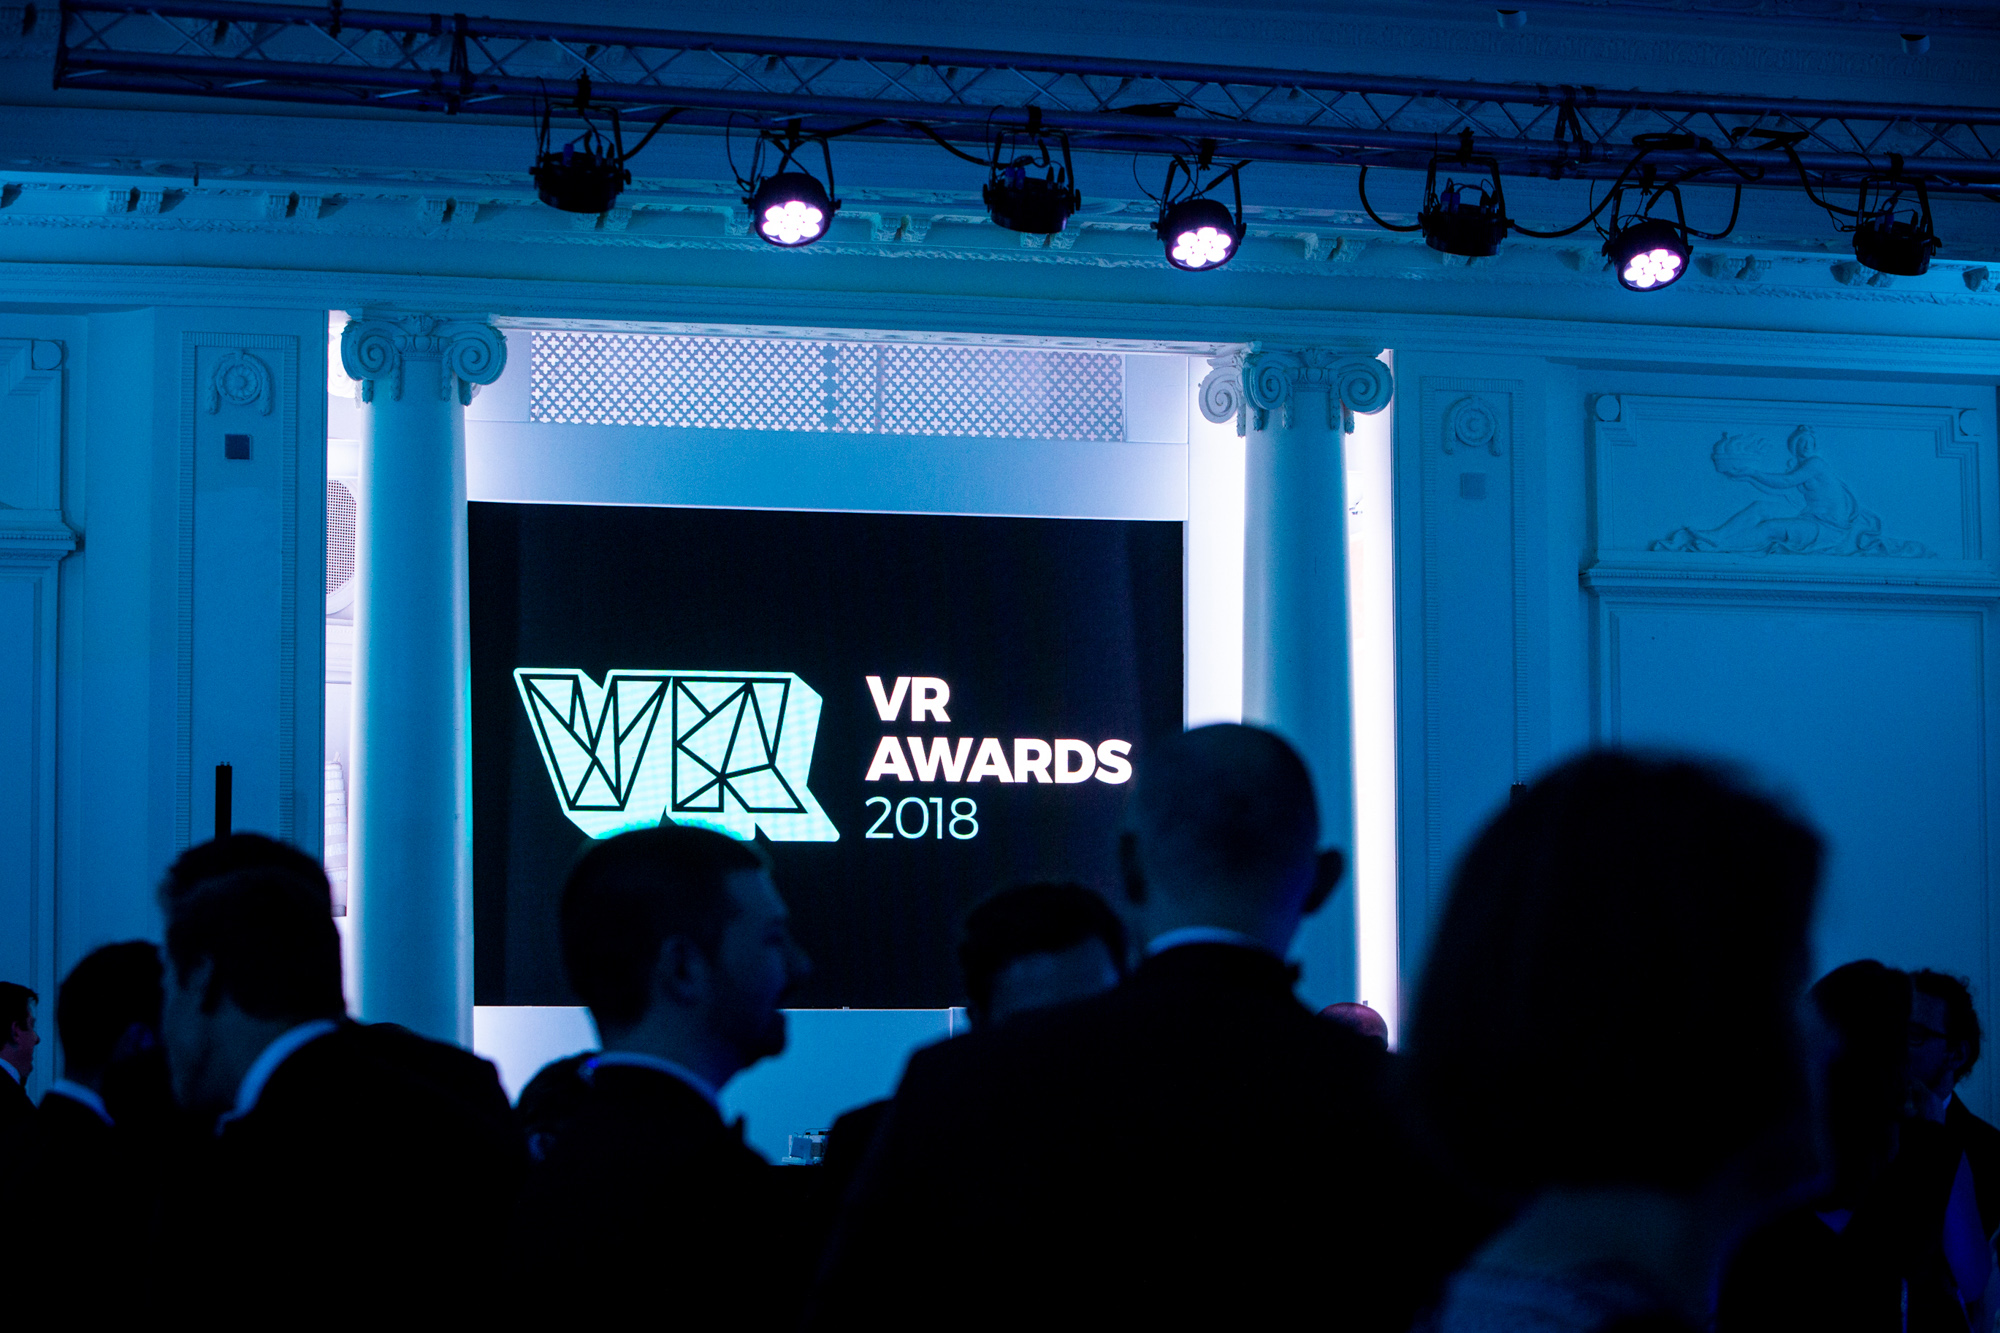 Raccoon_London_VR_Awards_2018_Event_Photography-13.jpg